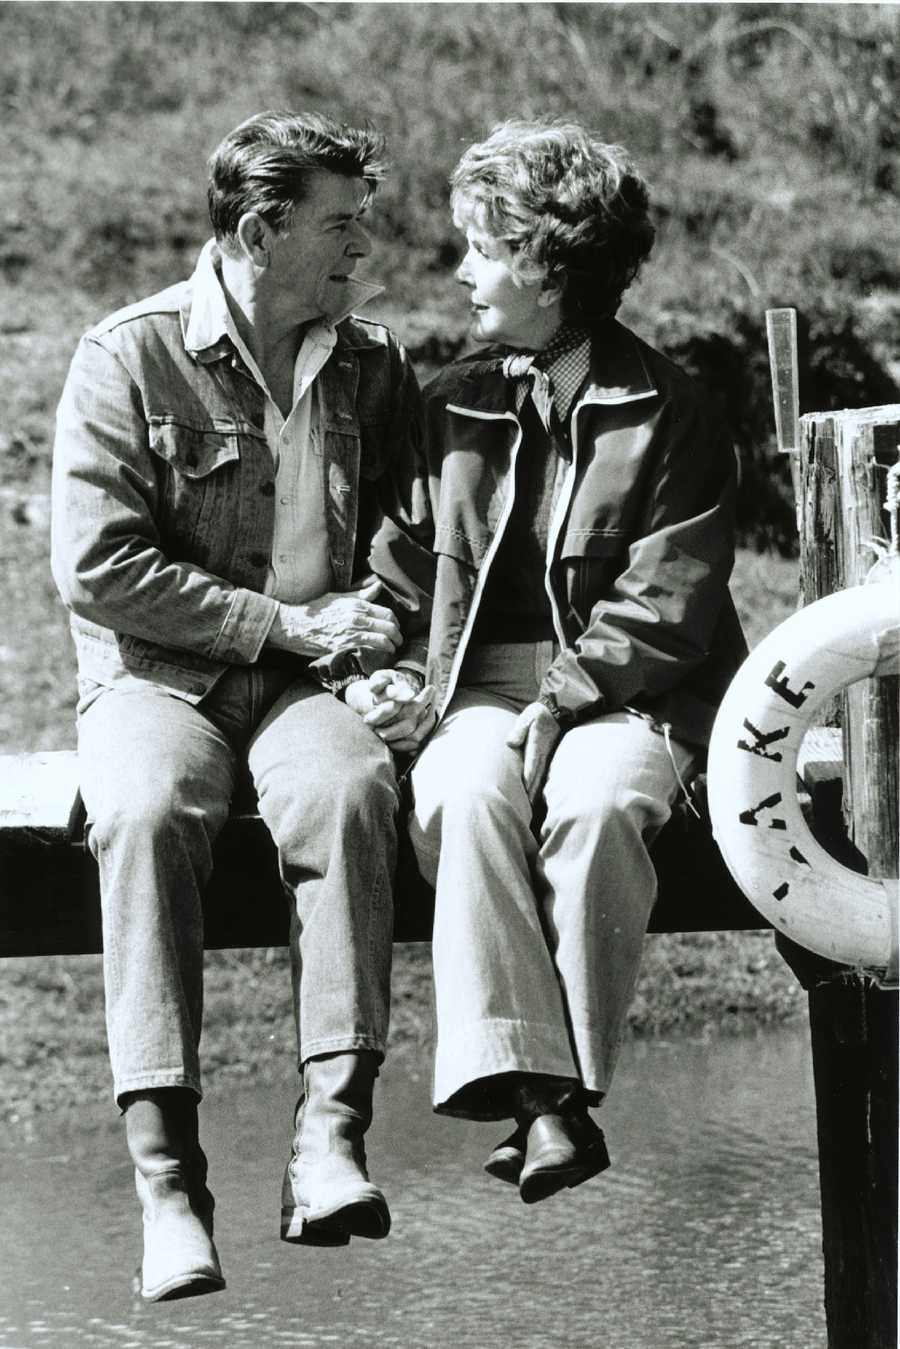 President Ronald Reagan and First Lady Nancy Reagan enjoy each other's company on the dock overlooking Lake Lucky at Rancho del Cielo in Santa Barbara, California, (March 4, 1982)